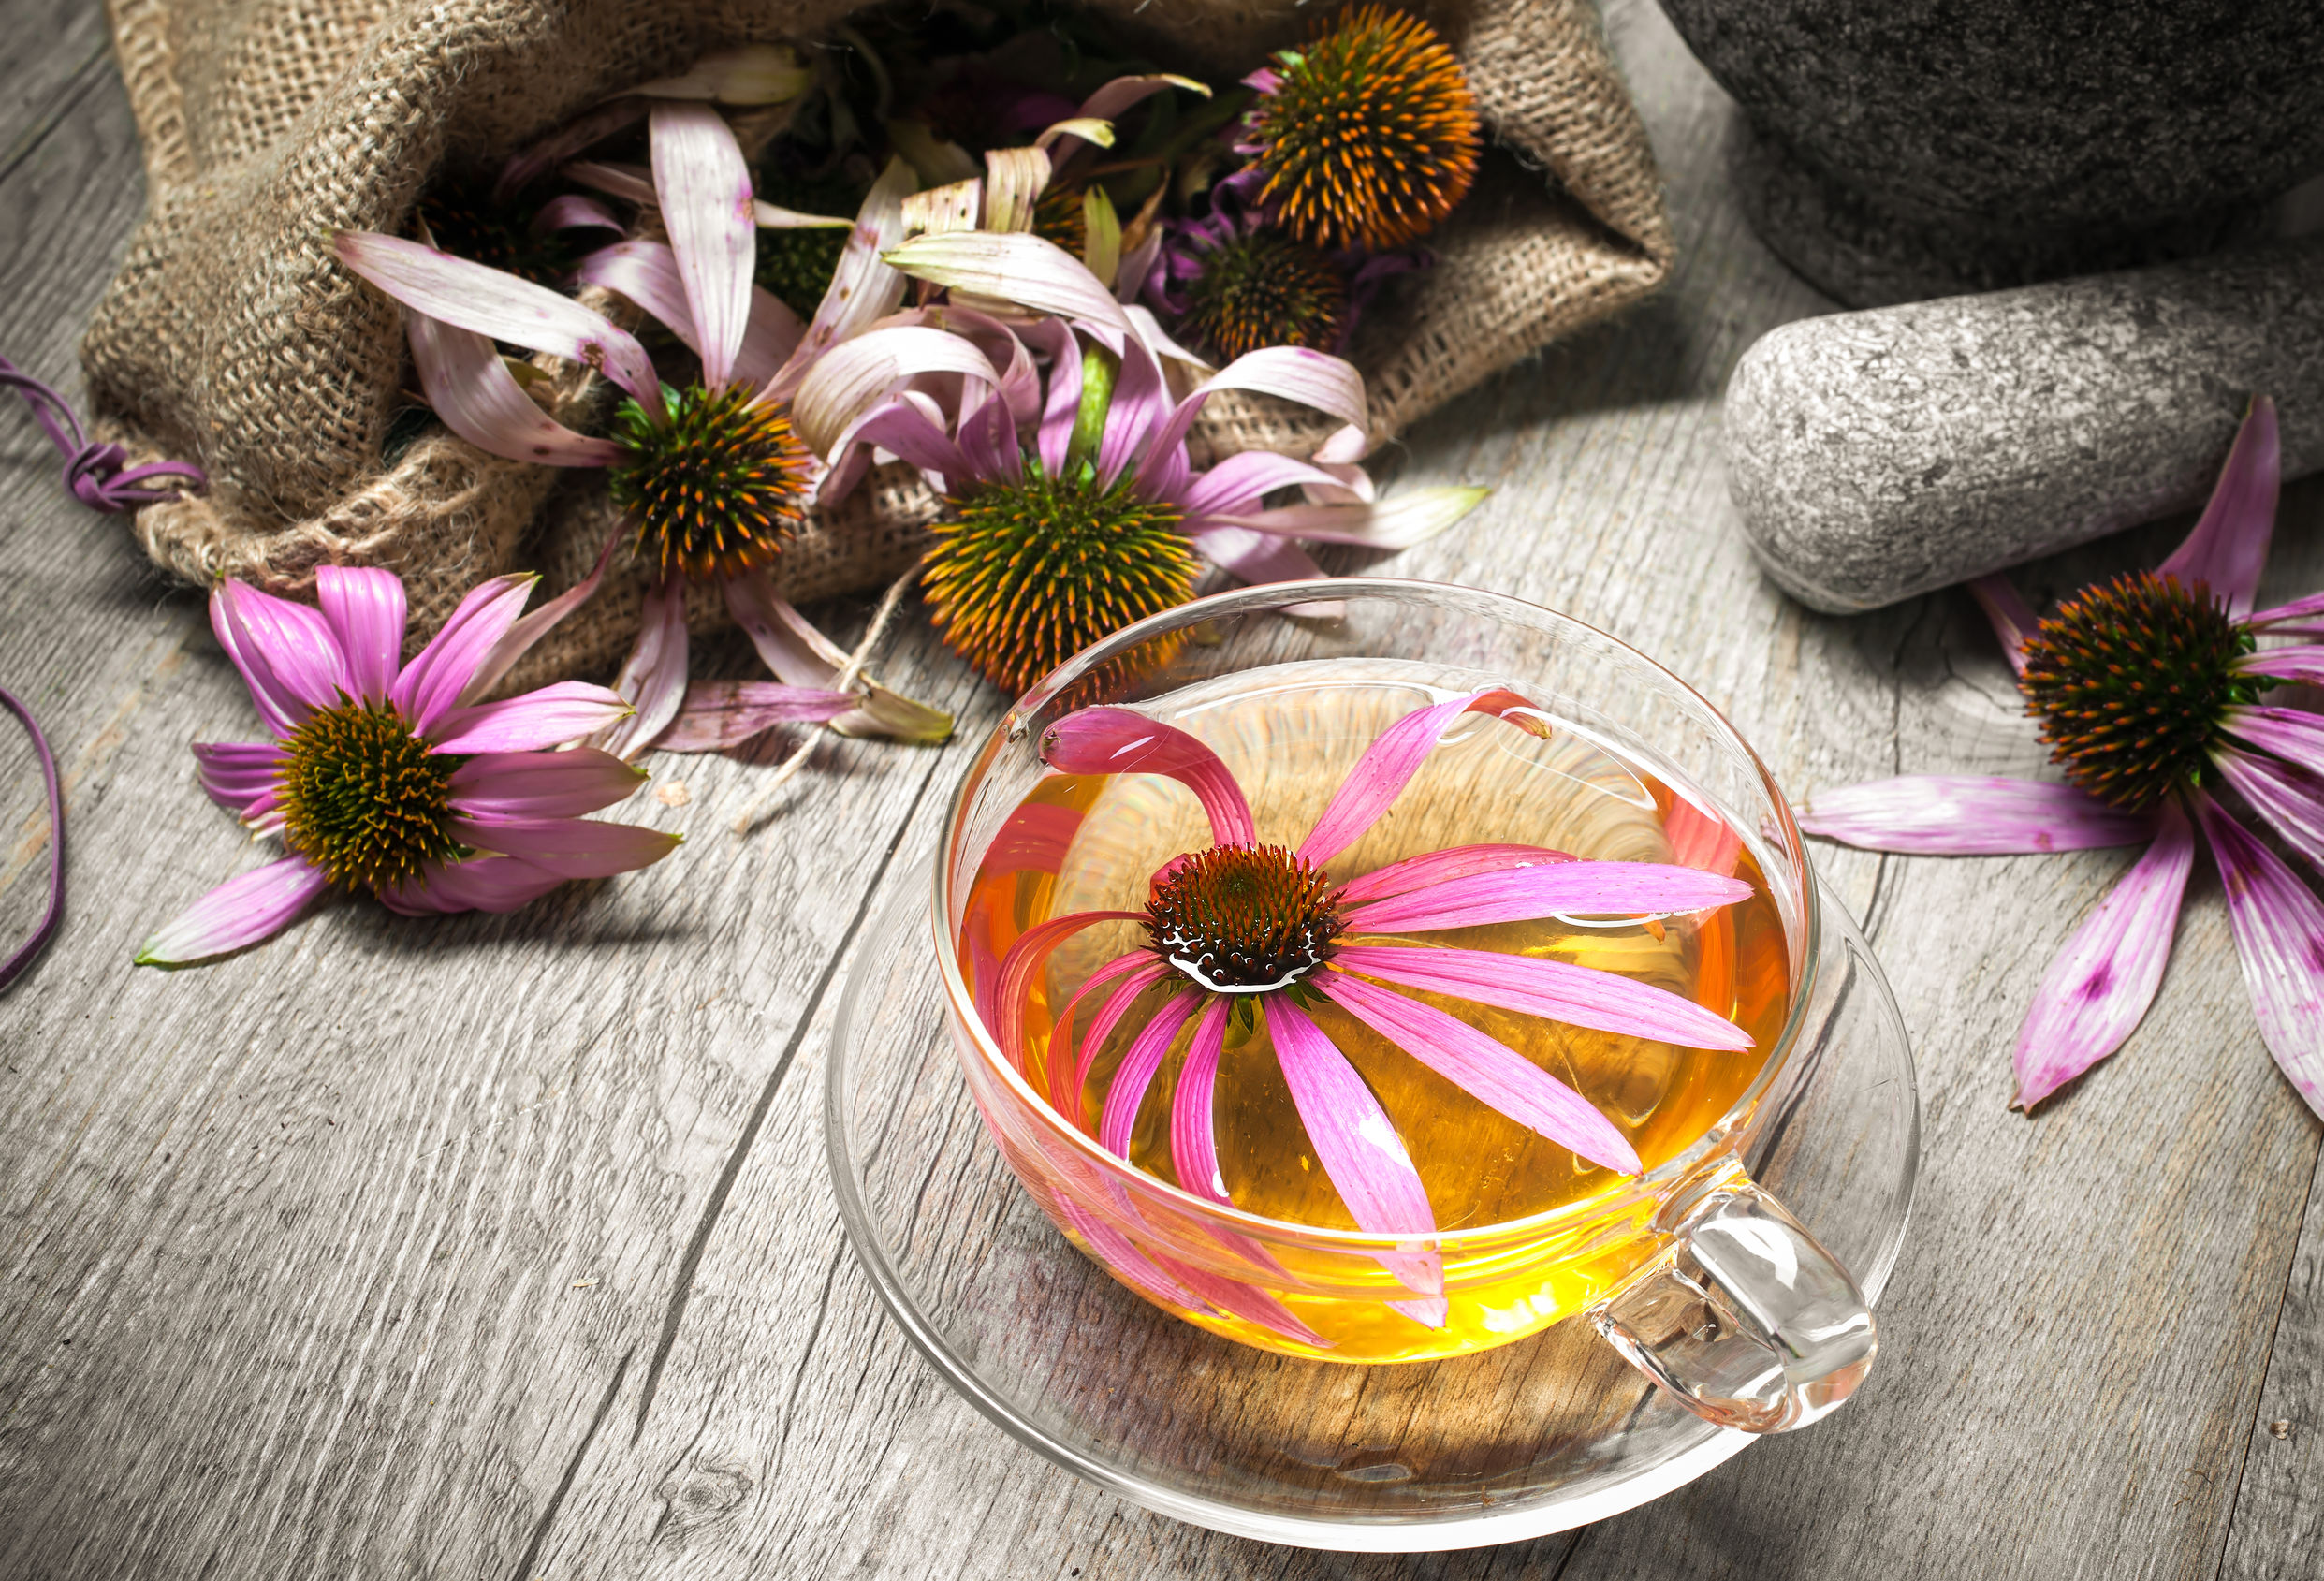 Best Echinacea Supplement 2021: Shopping Guide & Review